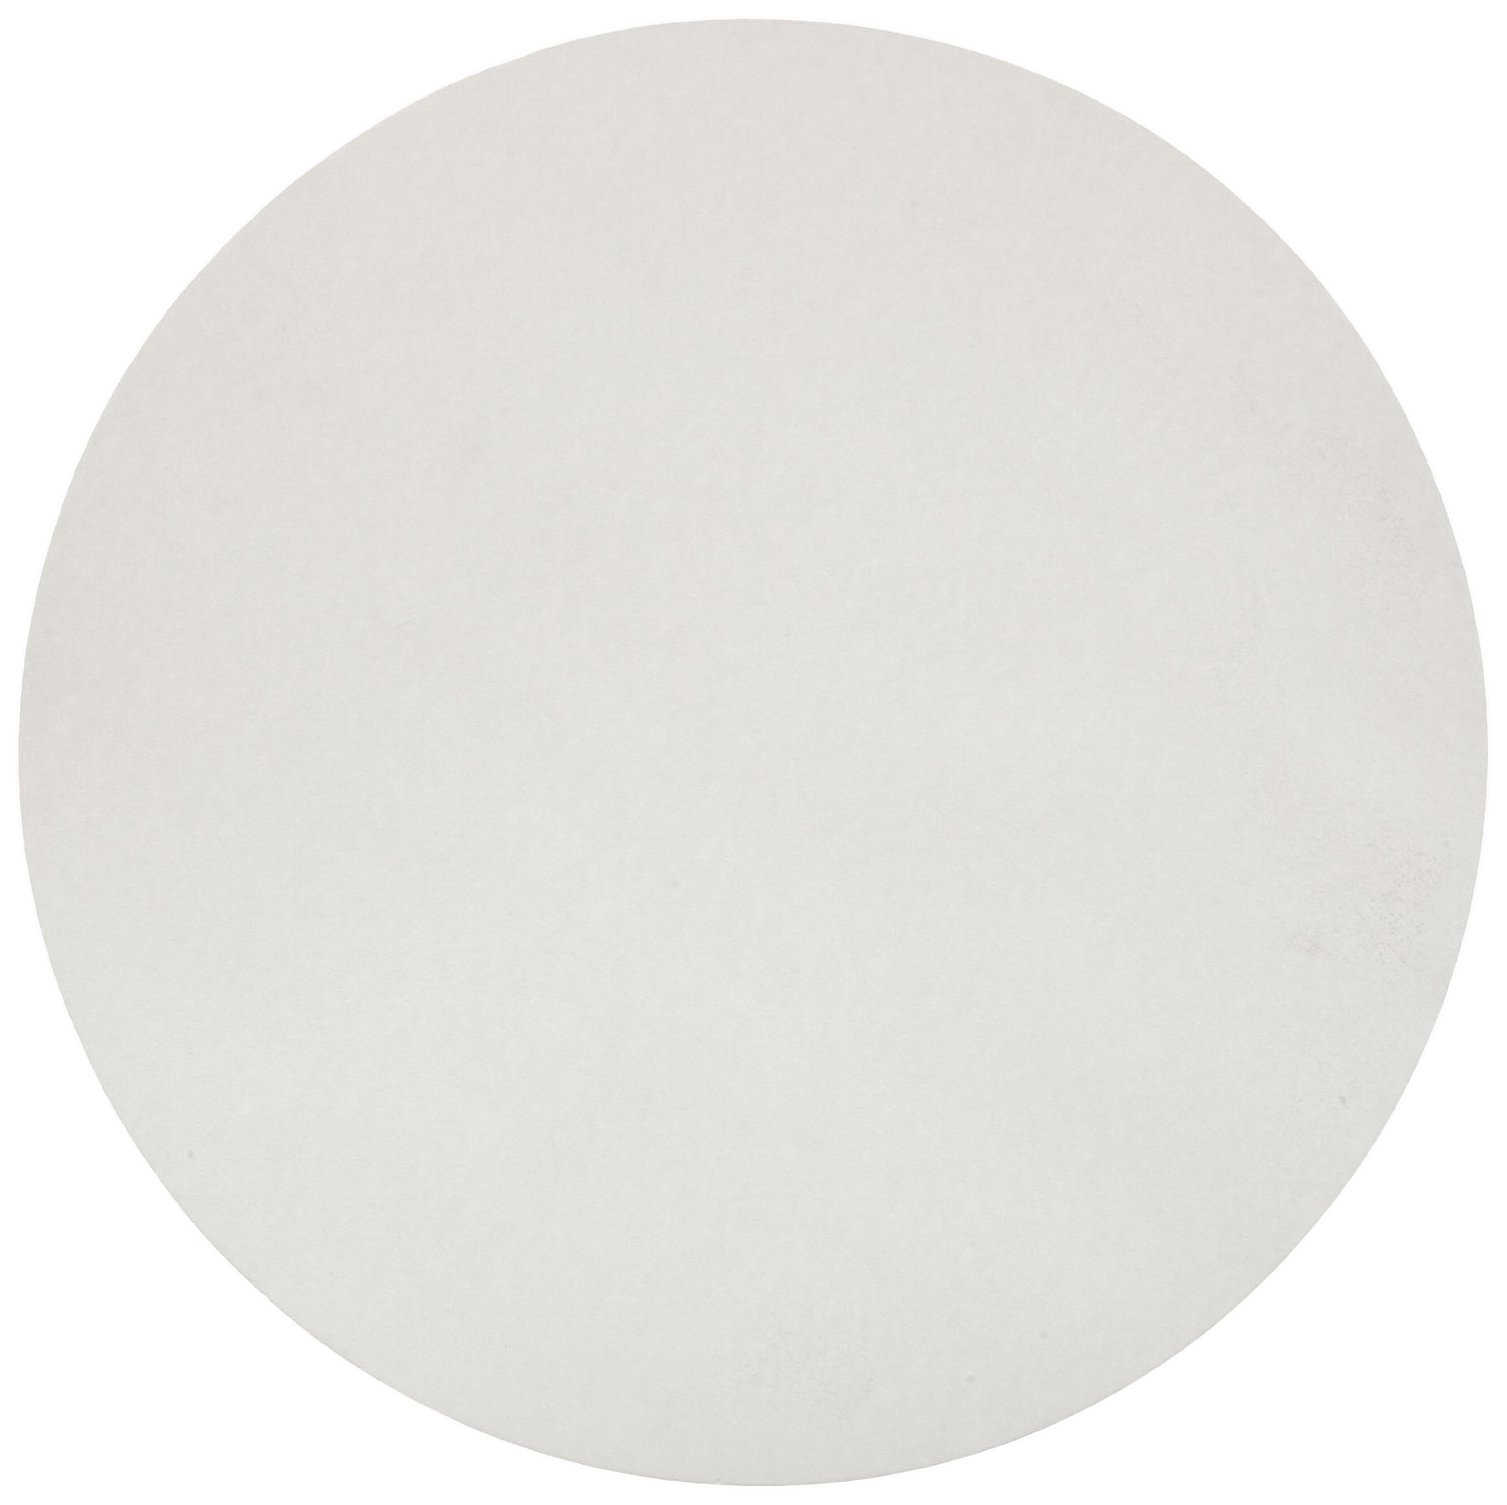 Ahlstrom 6100-2400 Qualitative Filter Paper, 24cm Diameter, 1.5 Micron, Slow Flow, Grade 610 (Pack of 100)